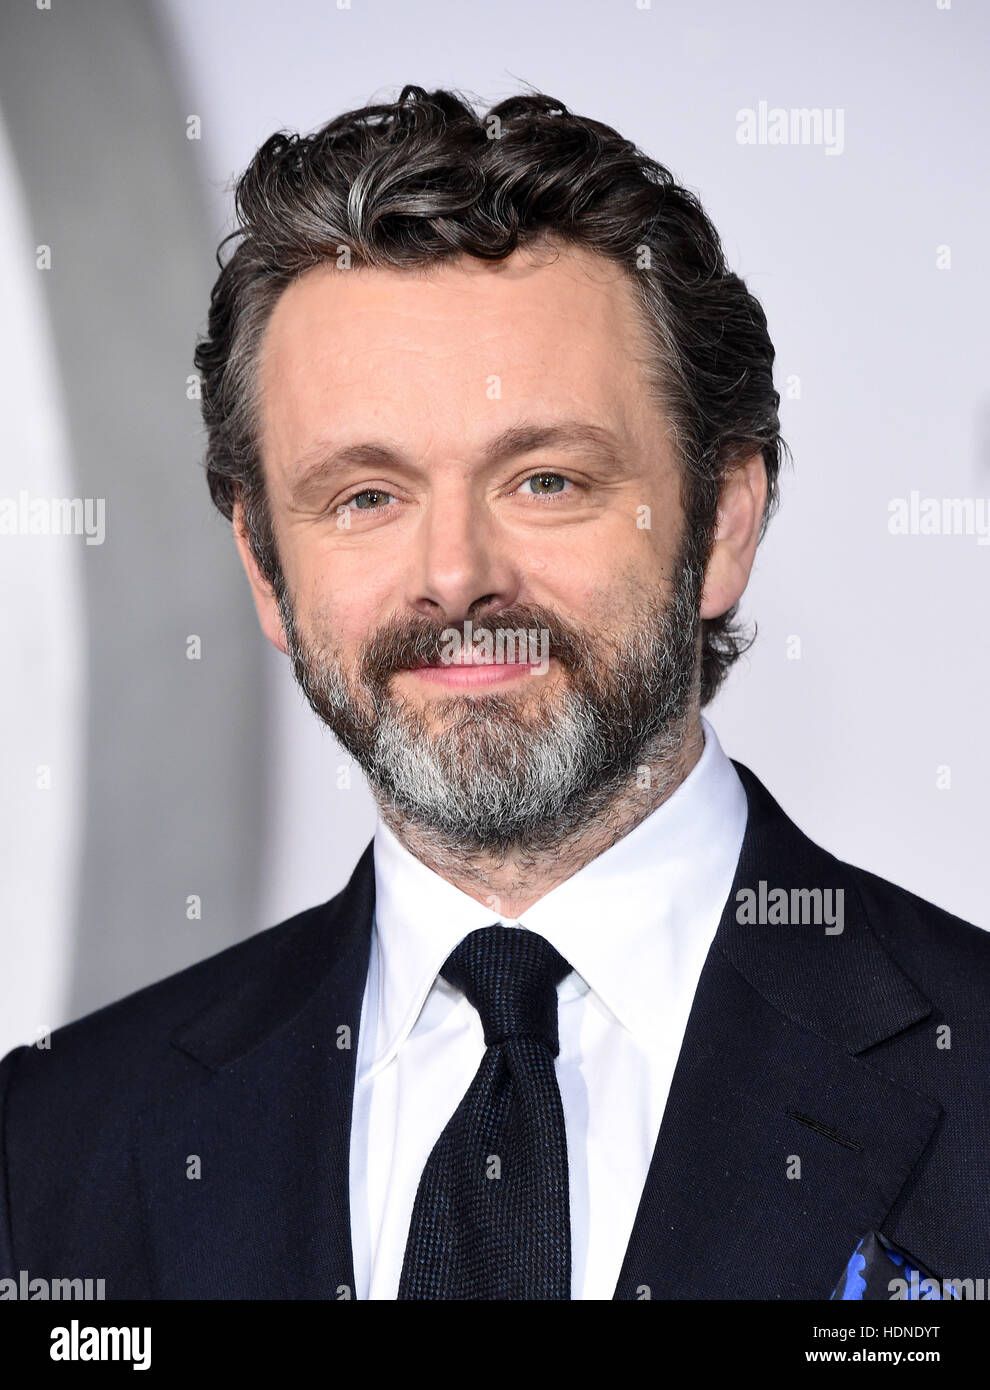 Westwood, California, USA. 14th Dec, 2016. Michael Sheen arrives for the premiere of the film 'Passengers' - Stock Image